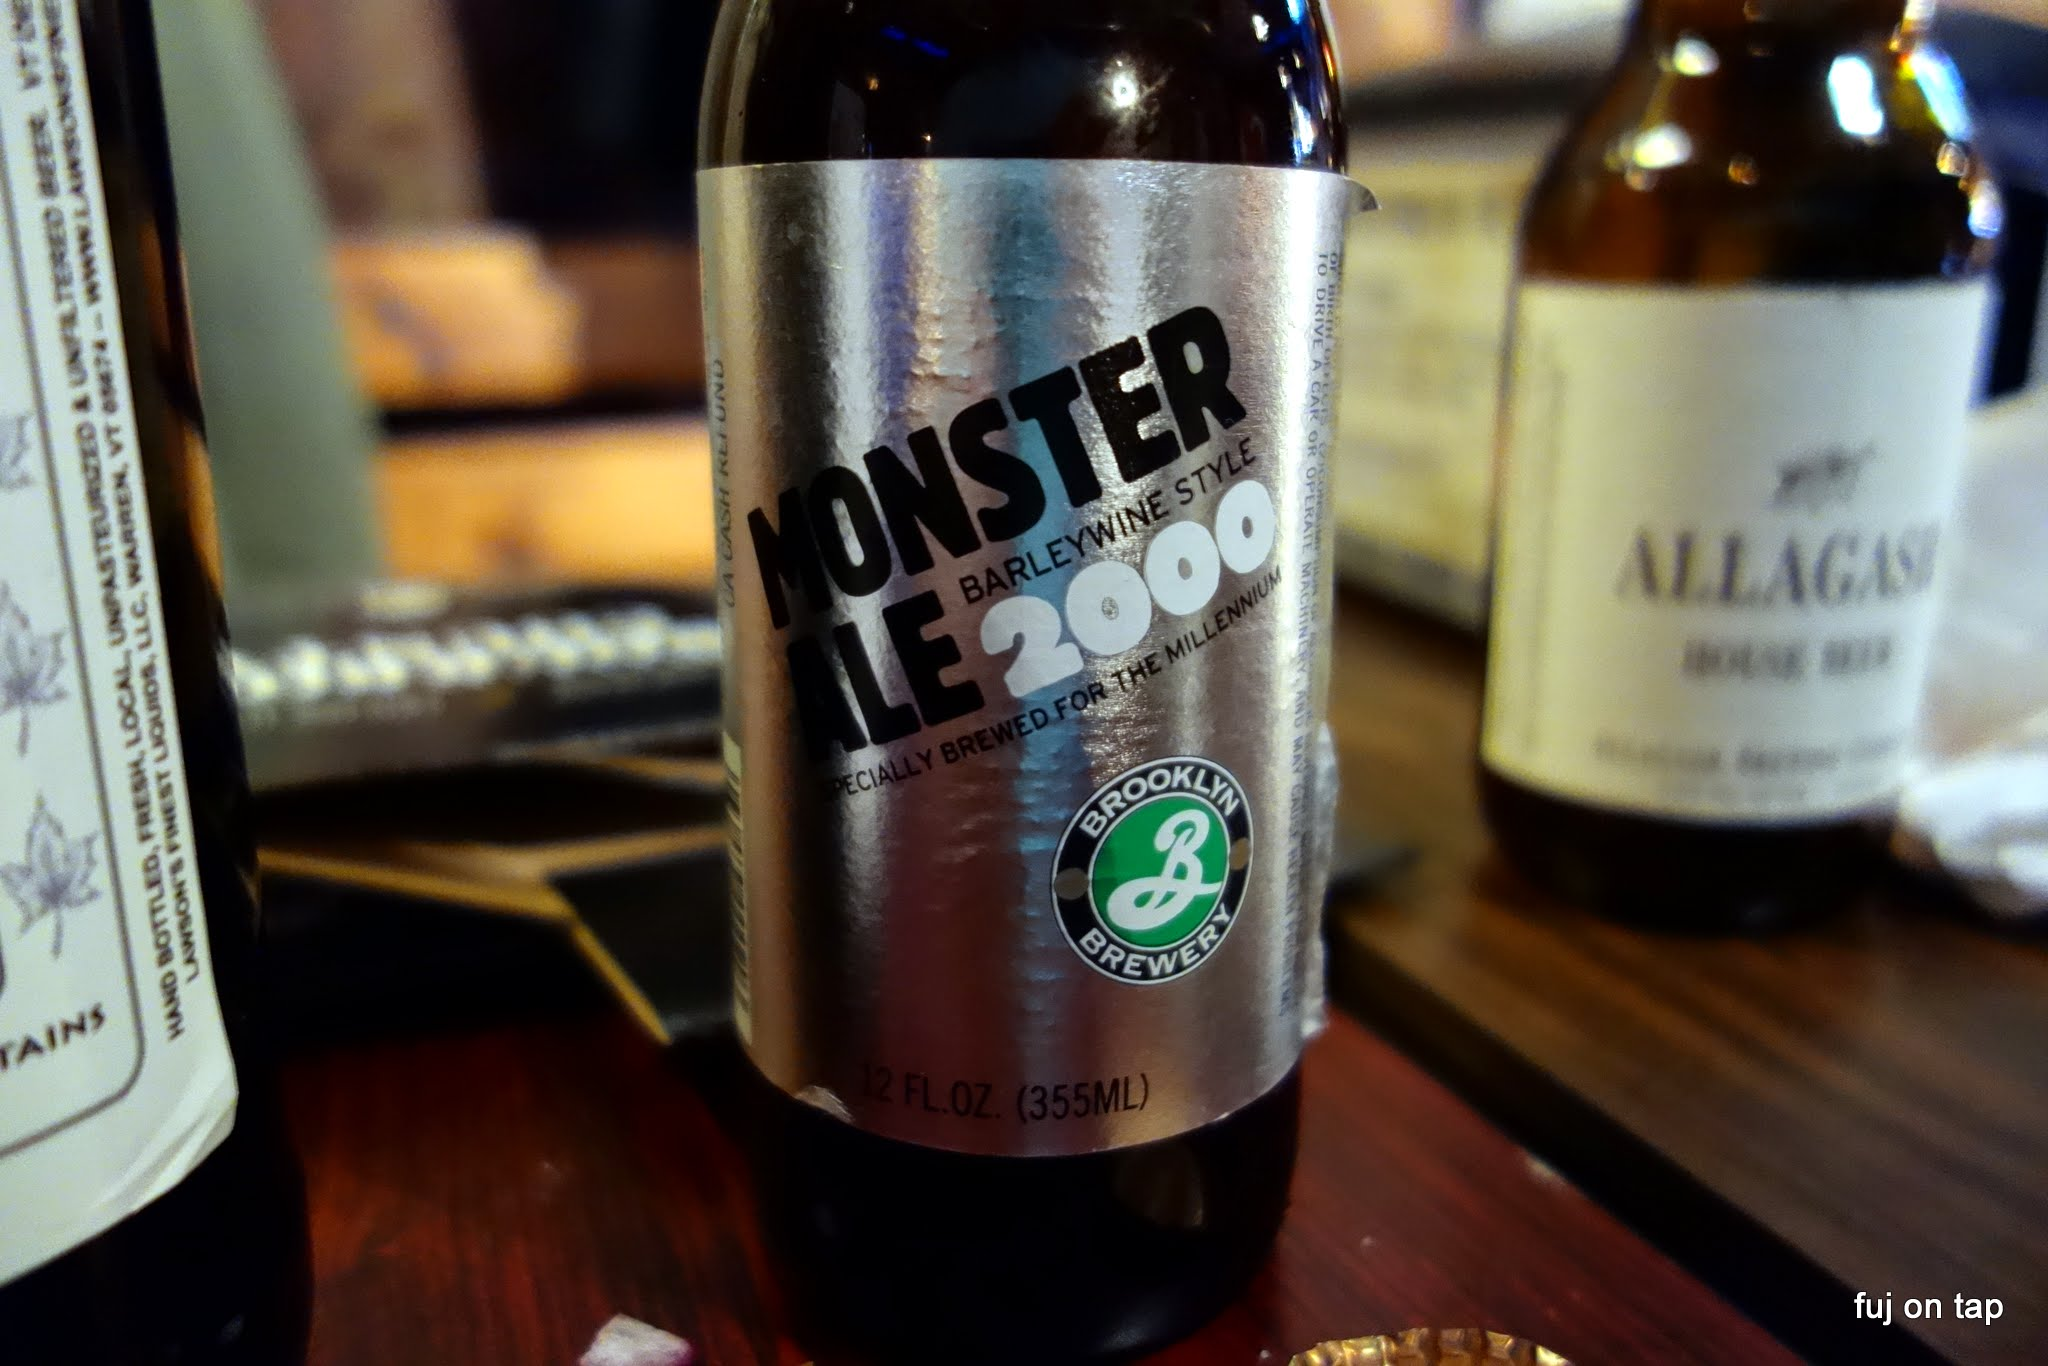 Brooklyn Monster Ale 2000